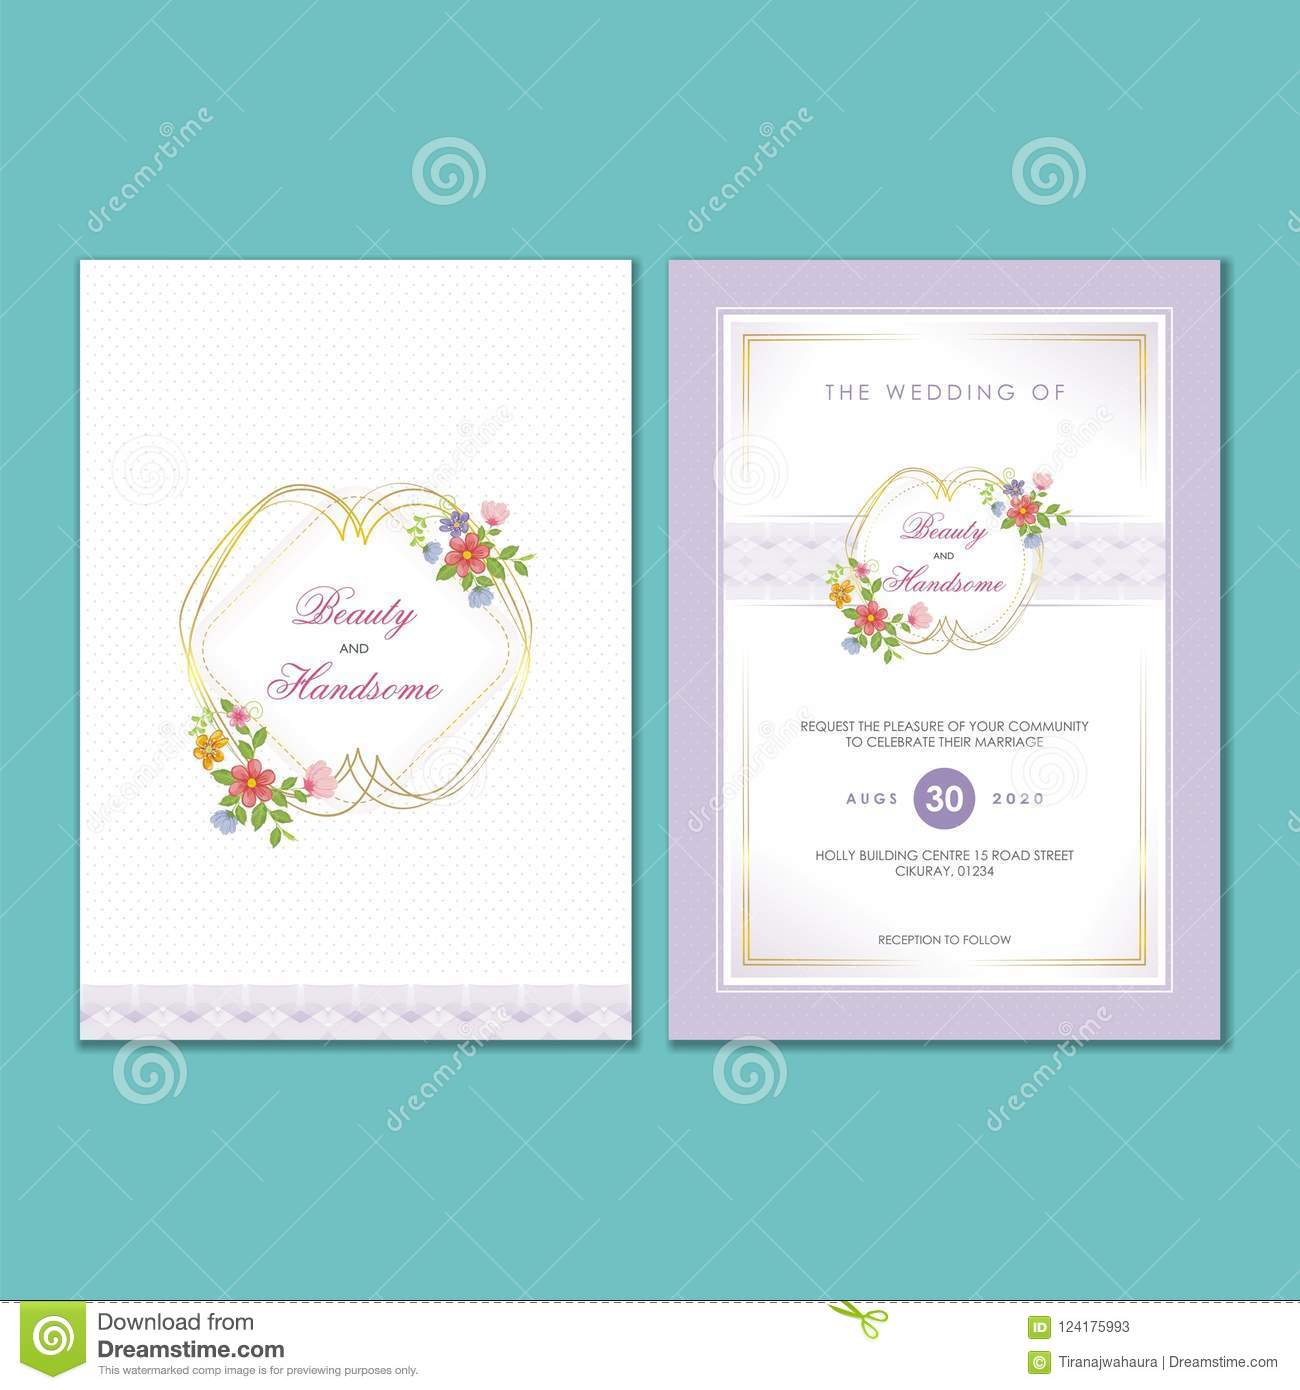 Wedding Invitation Card With Floral Ornaments Stock Vector